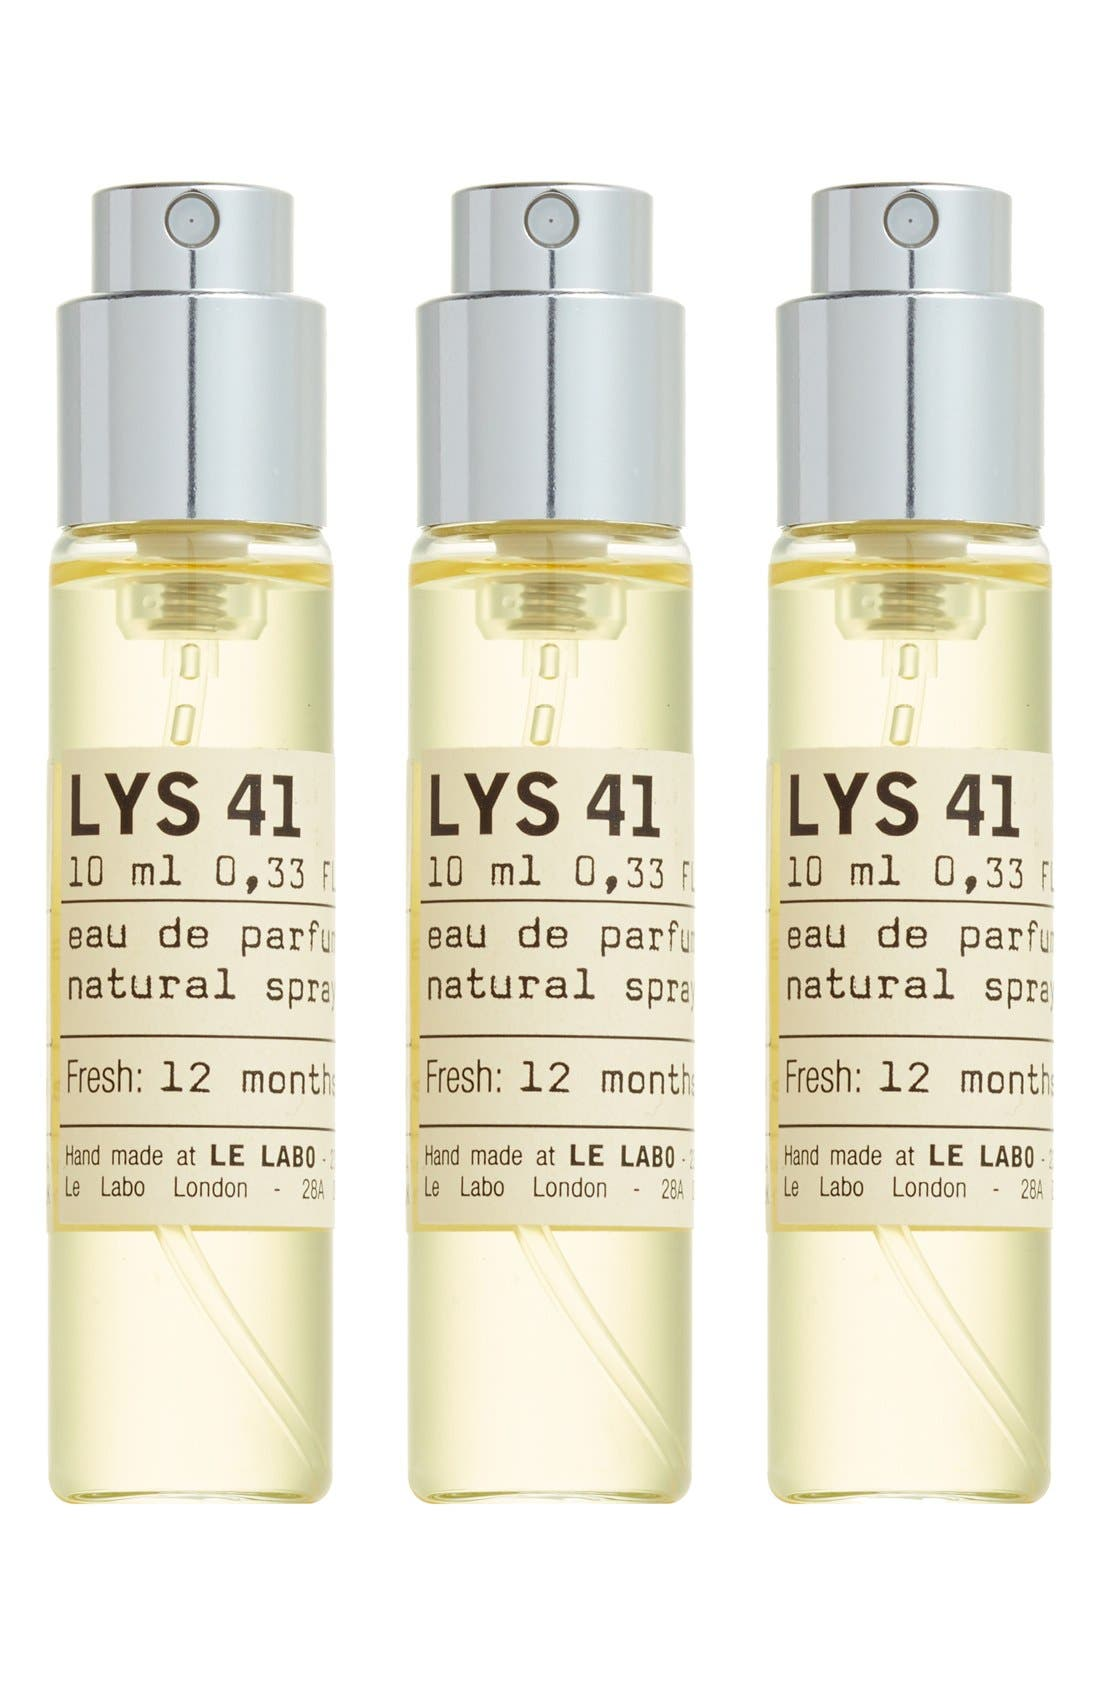 Le Labo 'Lys 41' Travel Tube Refill